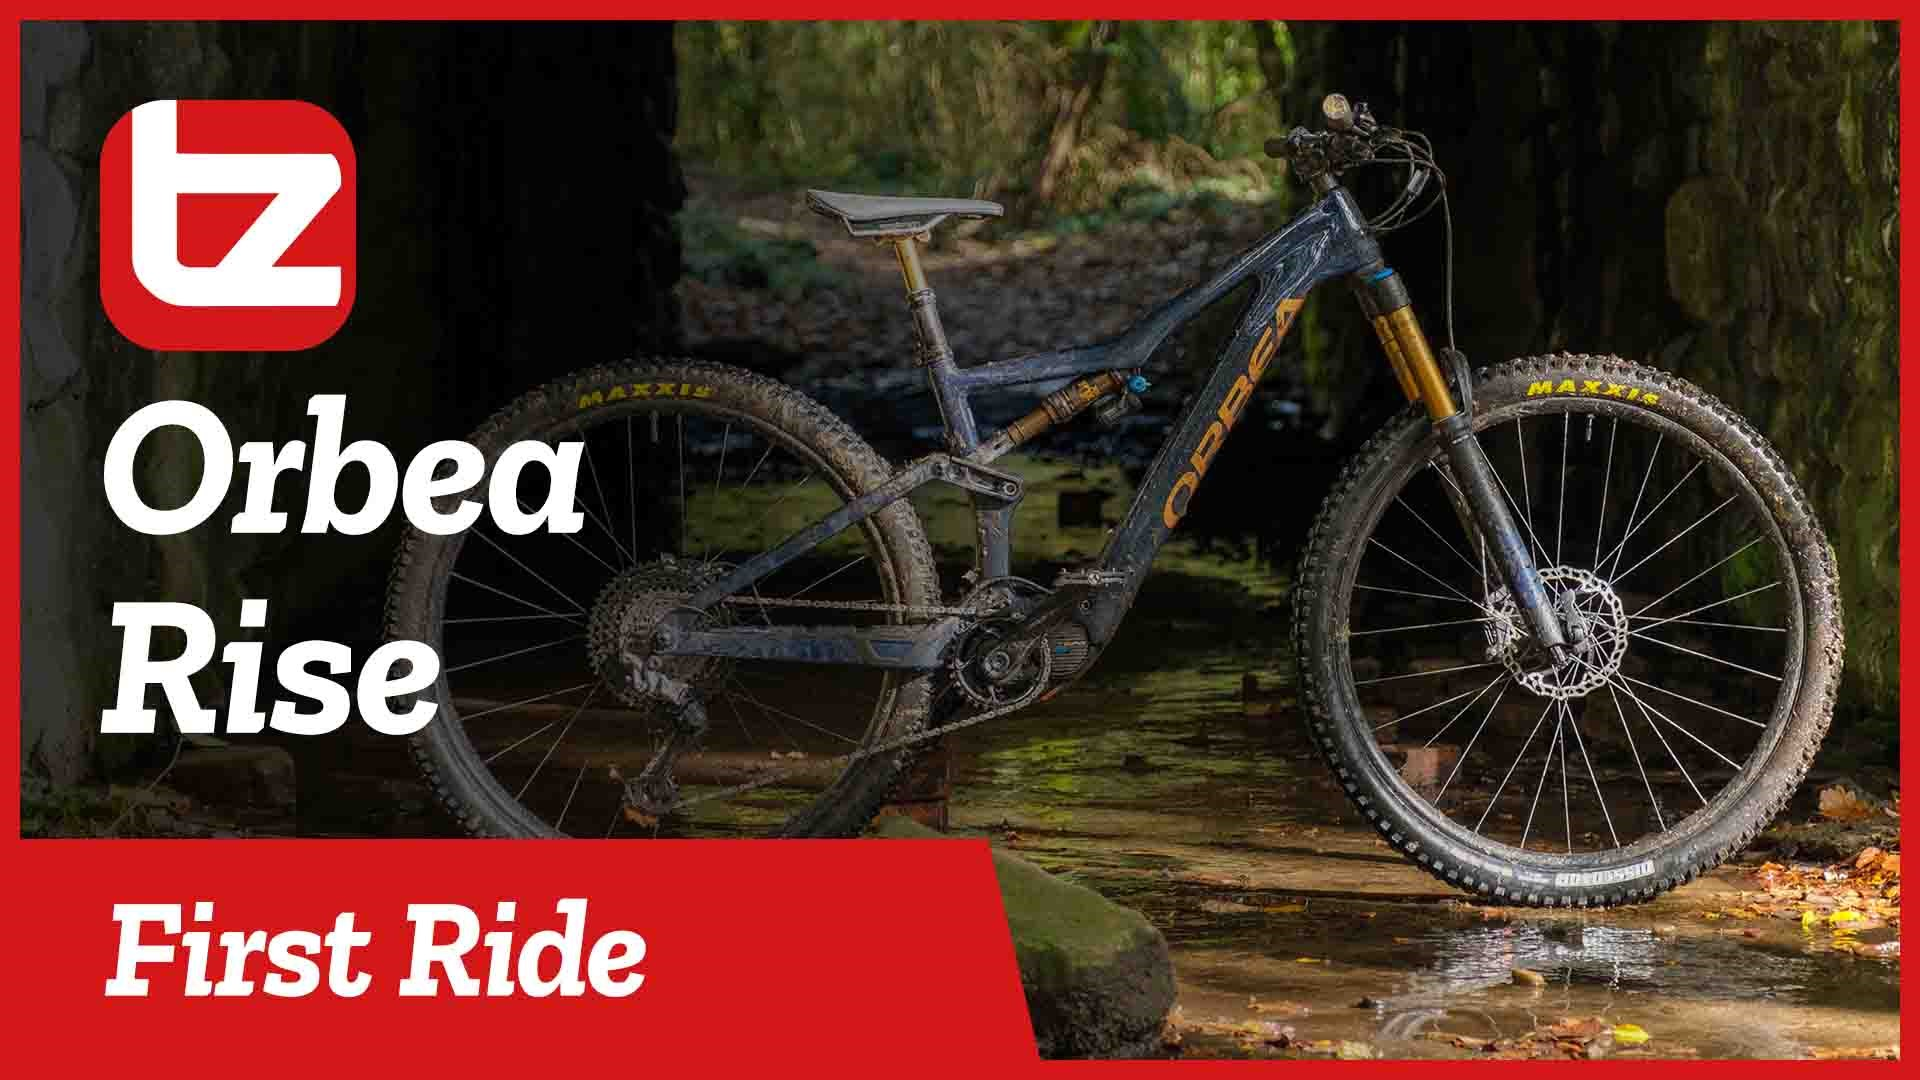 RIDING THE NEW ORBEA RISE | Our New Favourite Ebike? | First Ride | Tredz Bikes